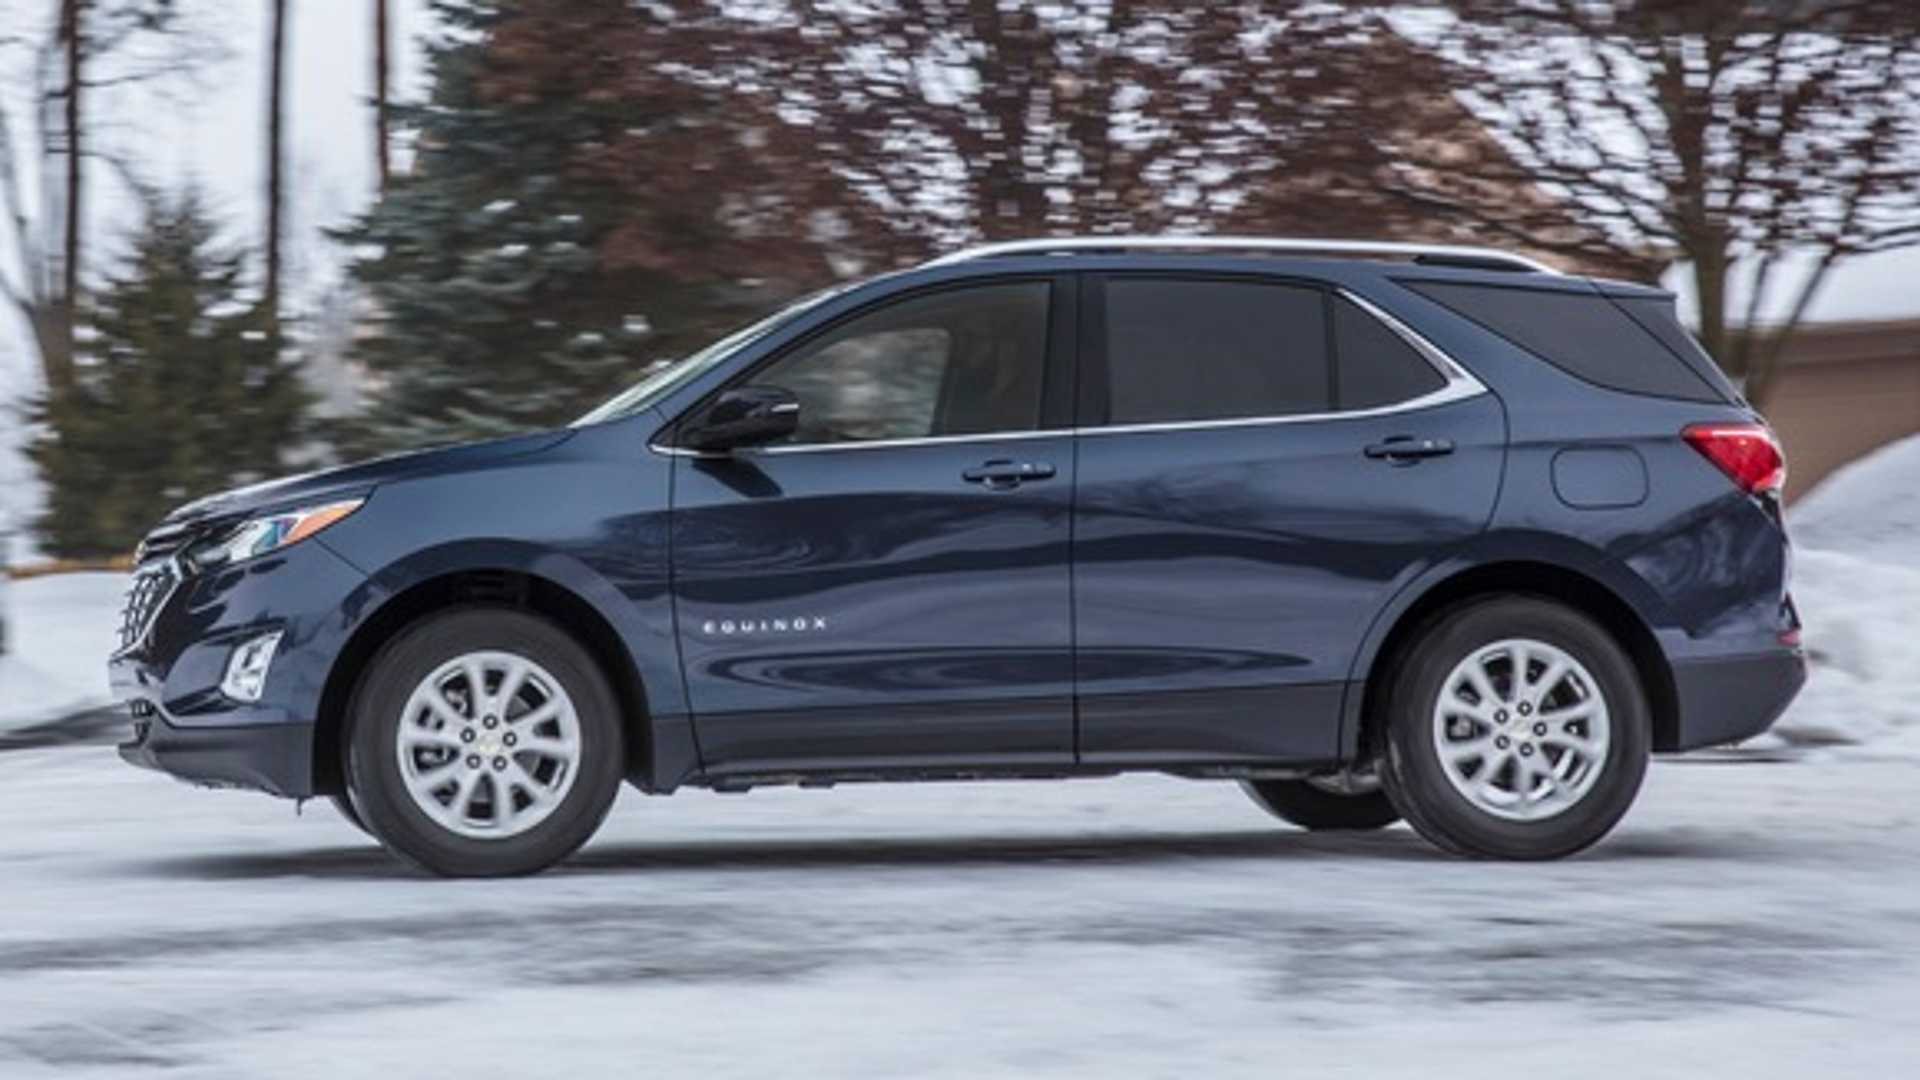 49 The Best 2020 Chevrolet Equinox Wallpaper